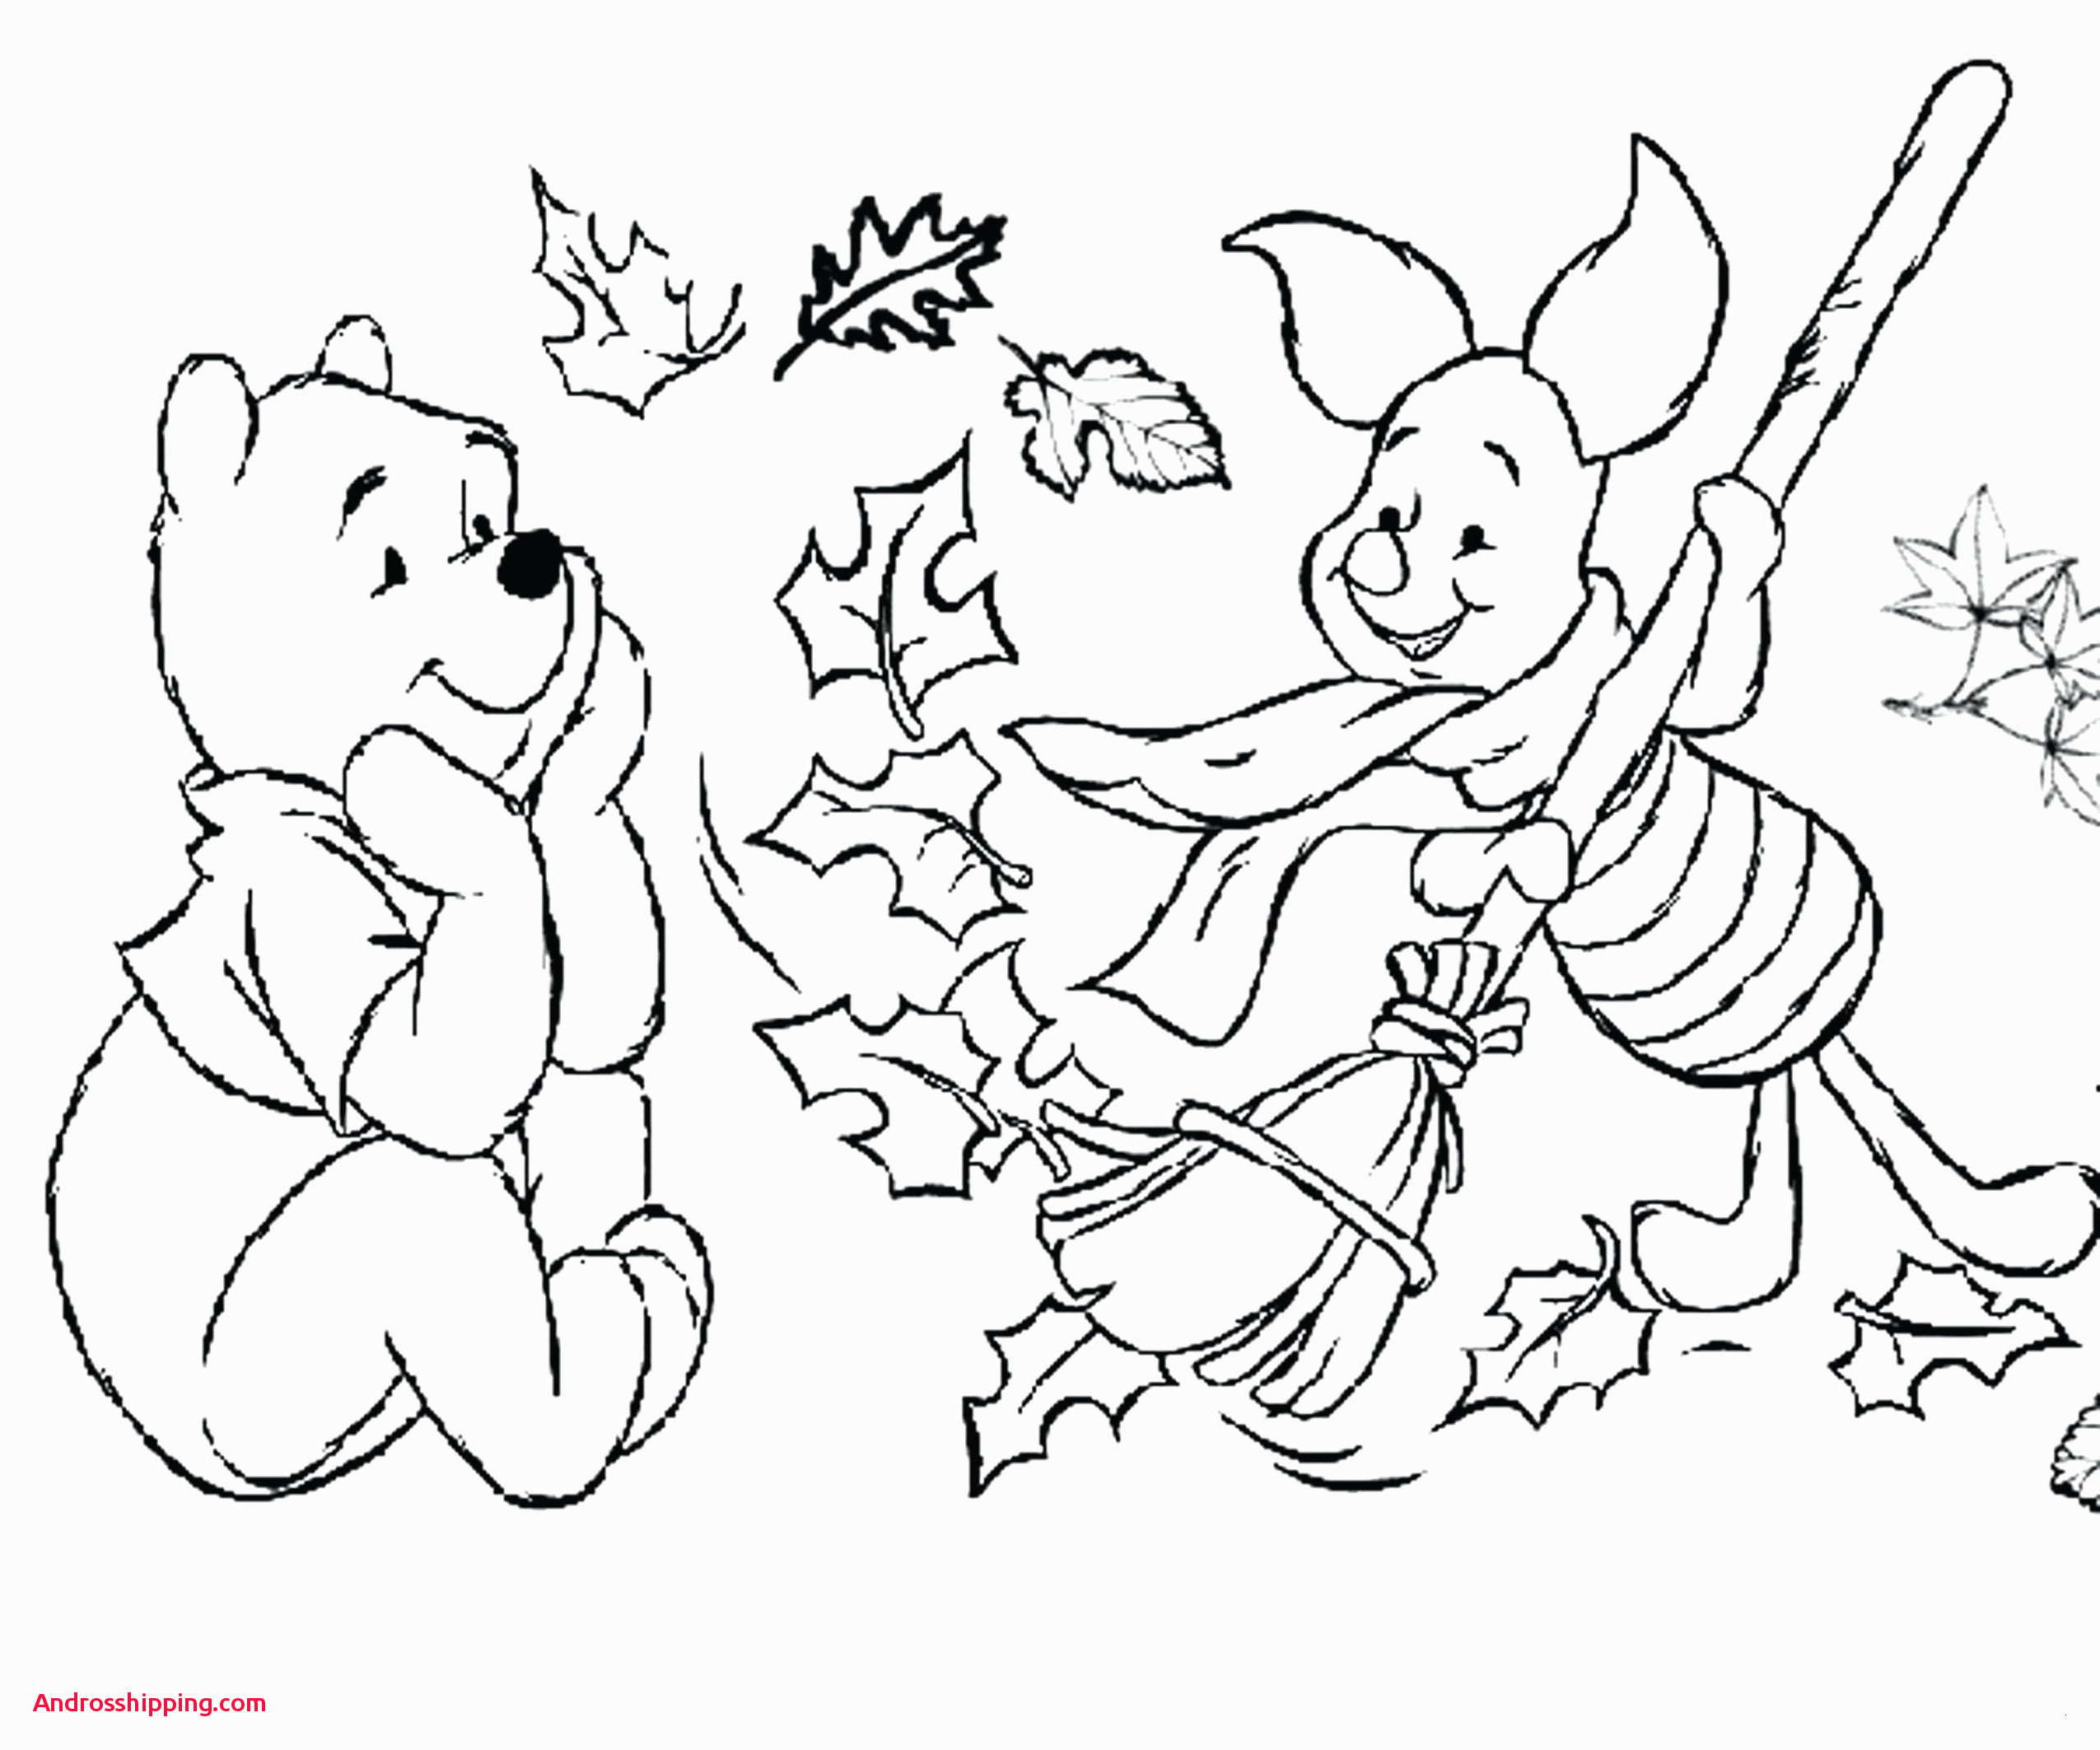 free printable kindergarten coloring pages Download-Free Printable Coloring Pages for Kids Great Kids Printable Coloring Pages Elegant Fall Coloring Pages 0d 1-o